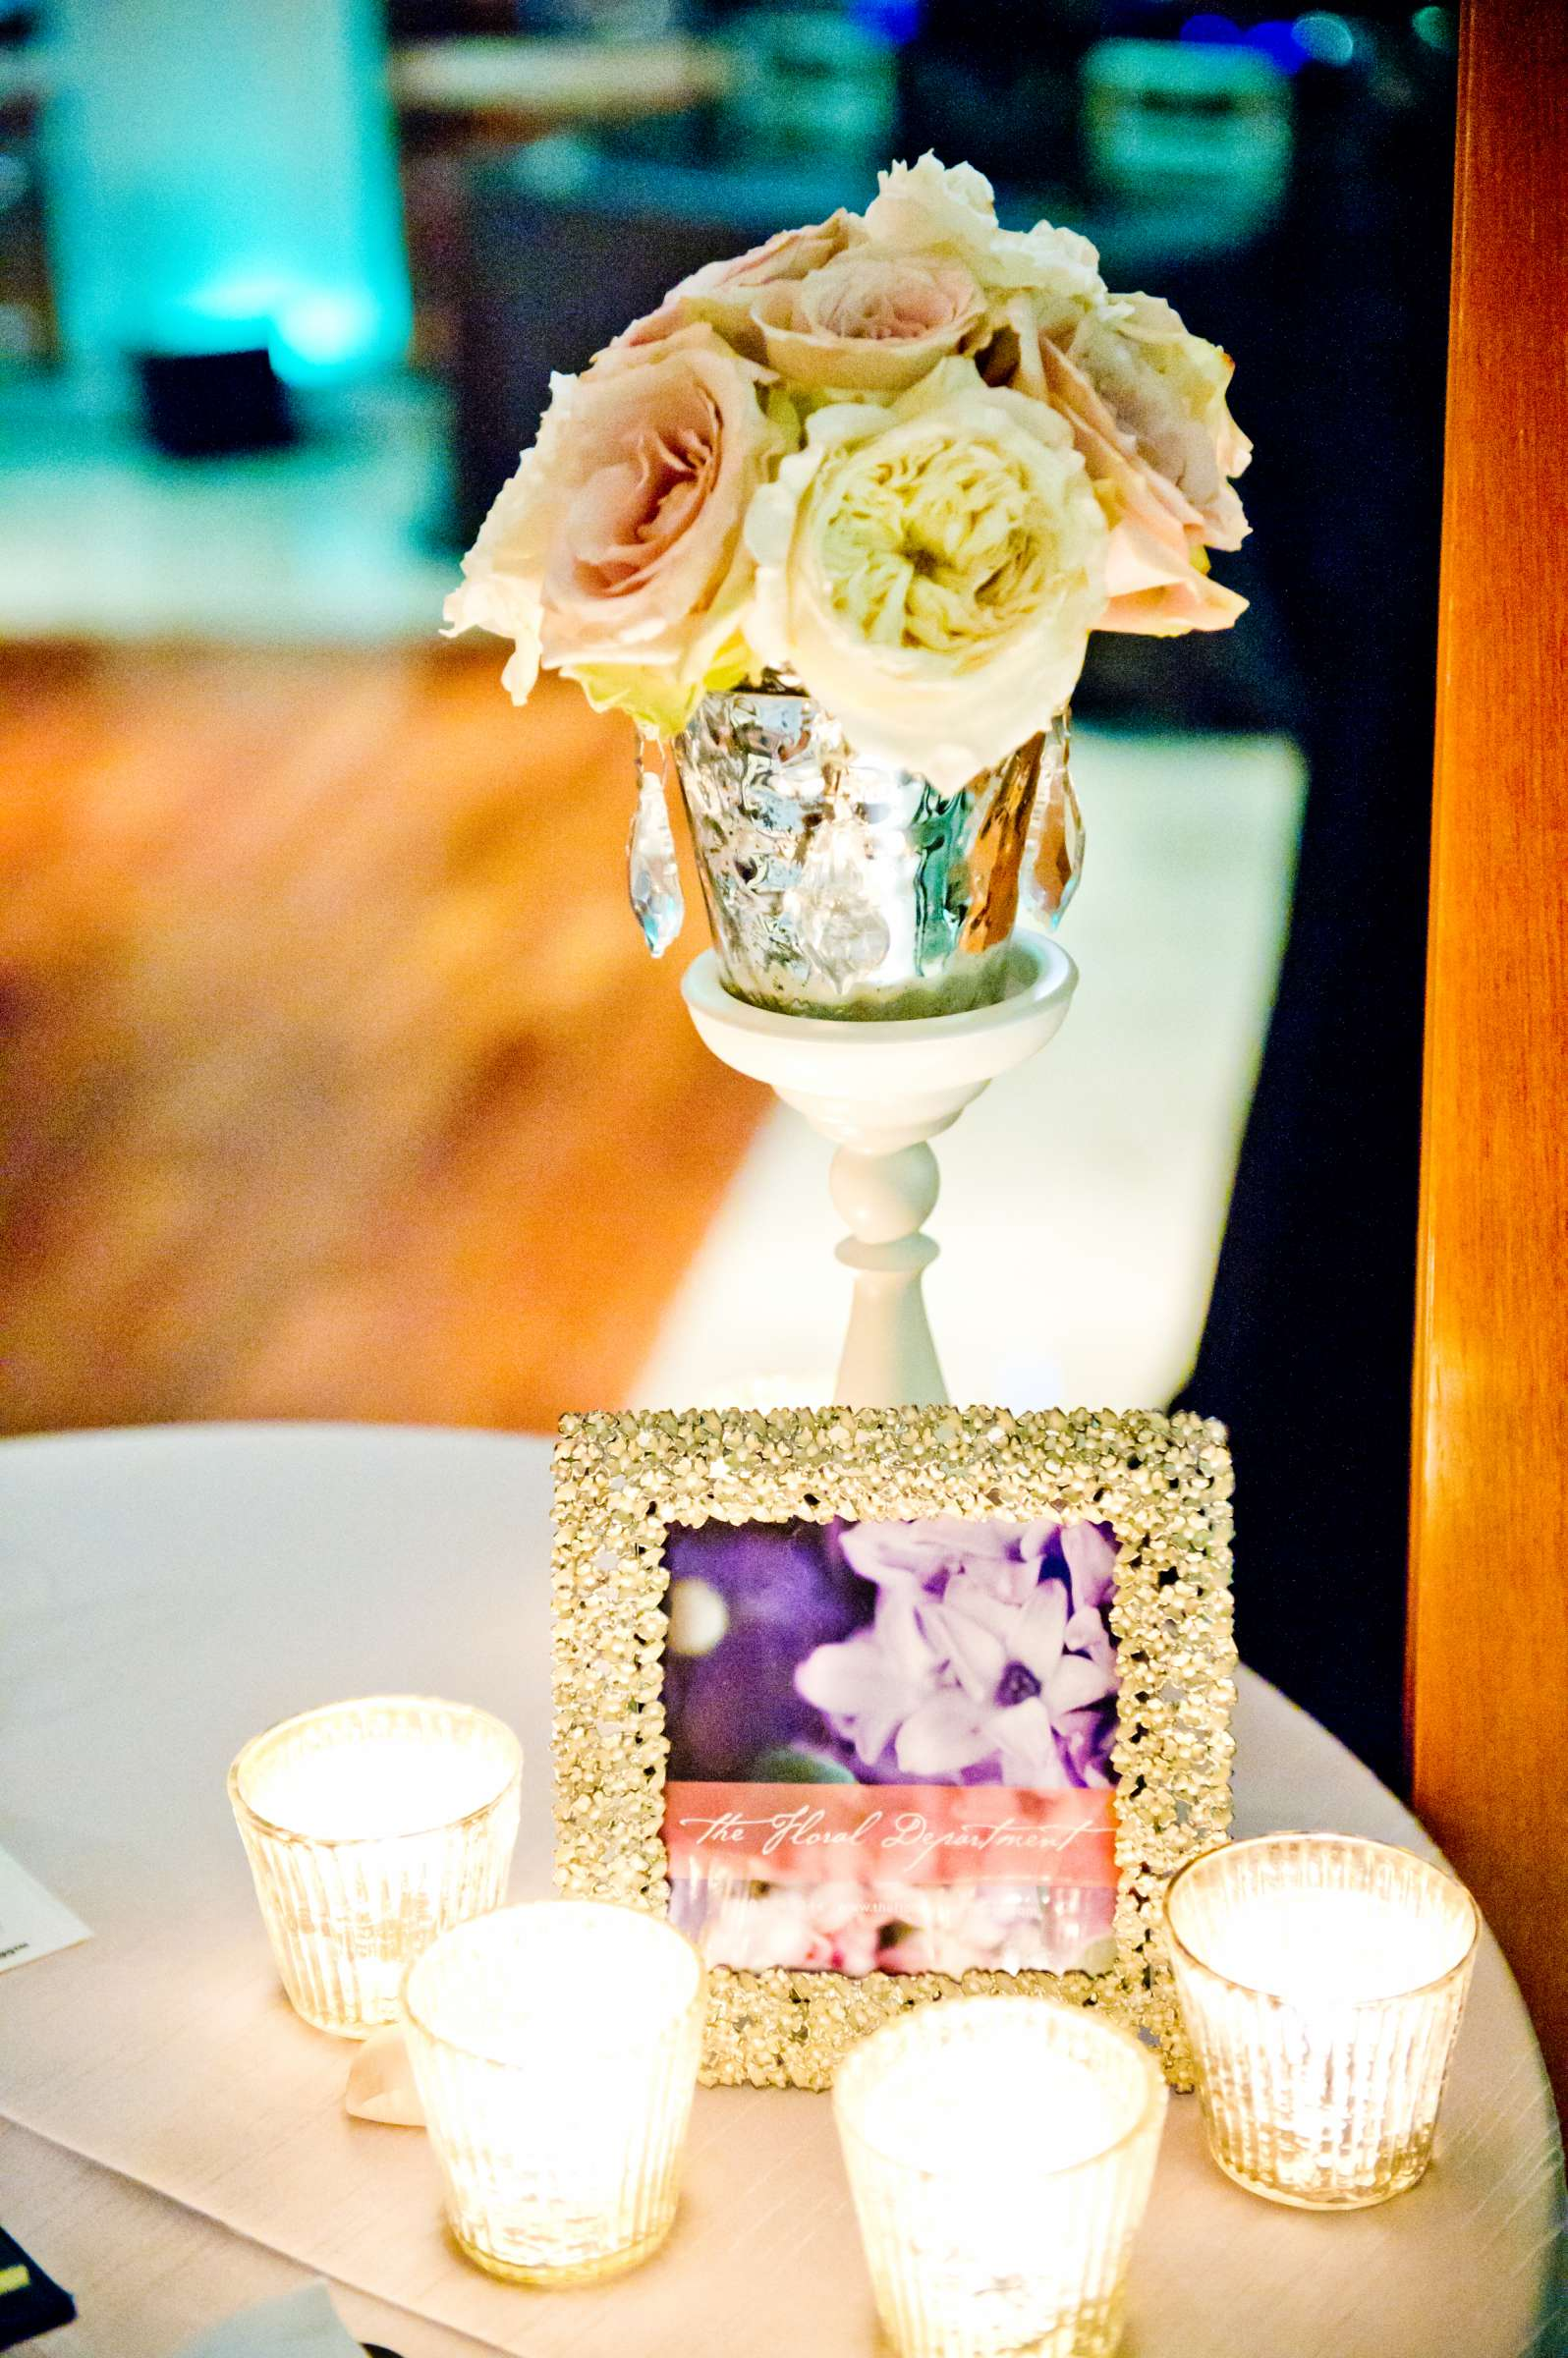 Ultimate Skybox Wedding coordinated by Creative Affairs Inc, Open House Wedding Photo #21 by True Photography